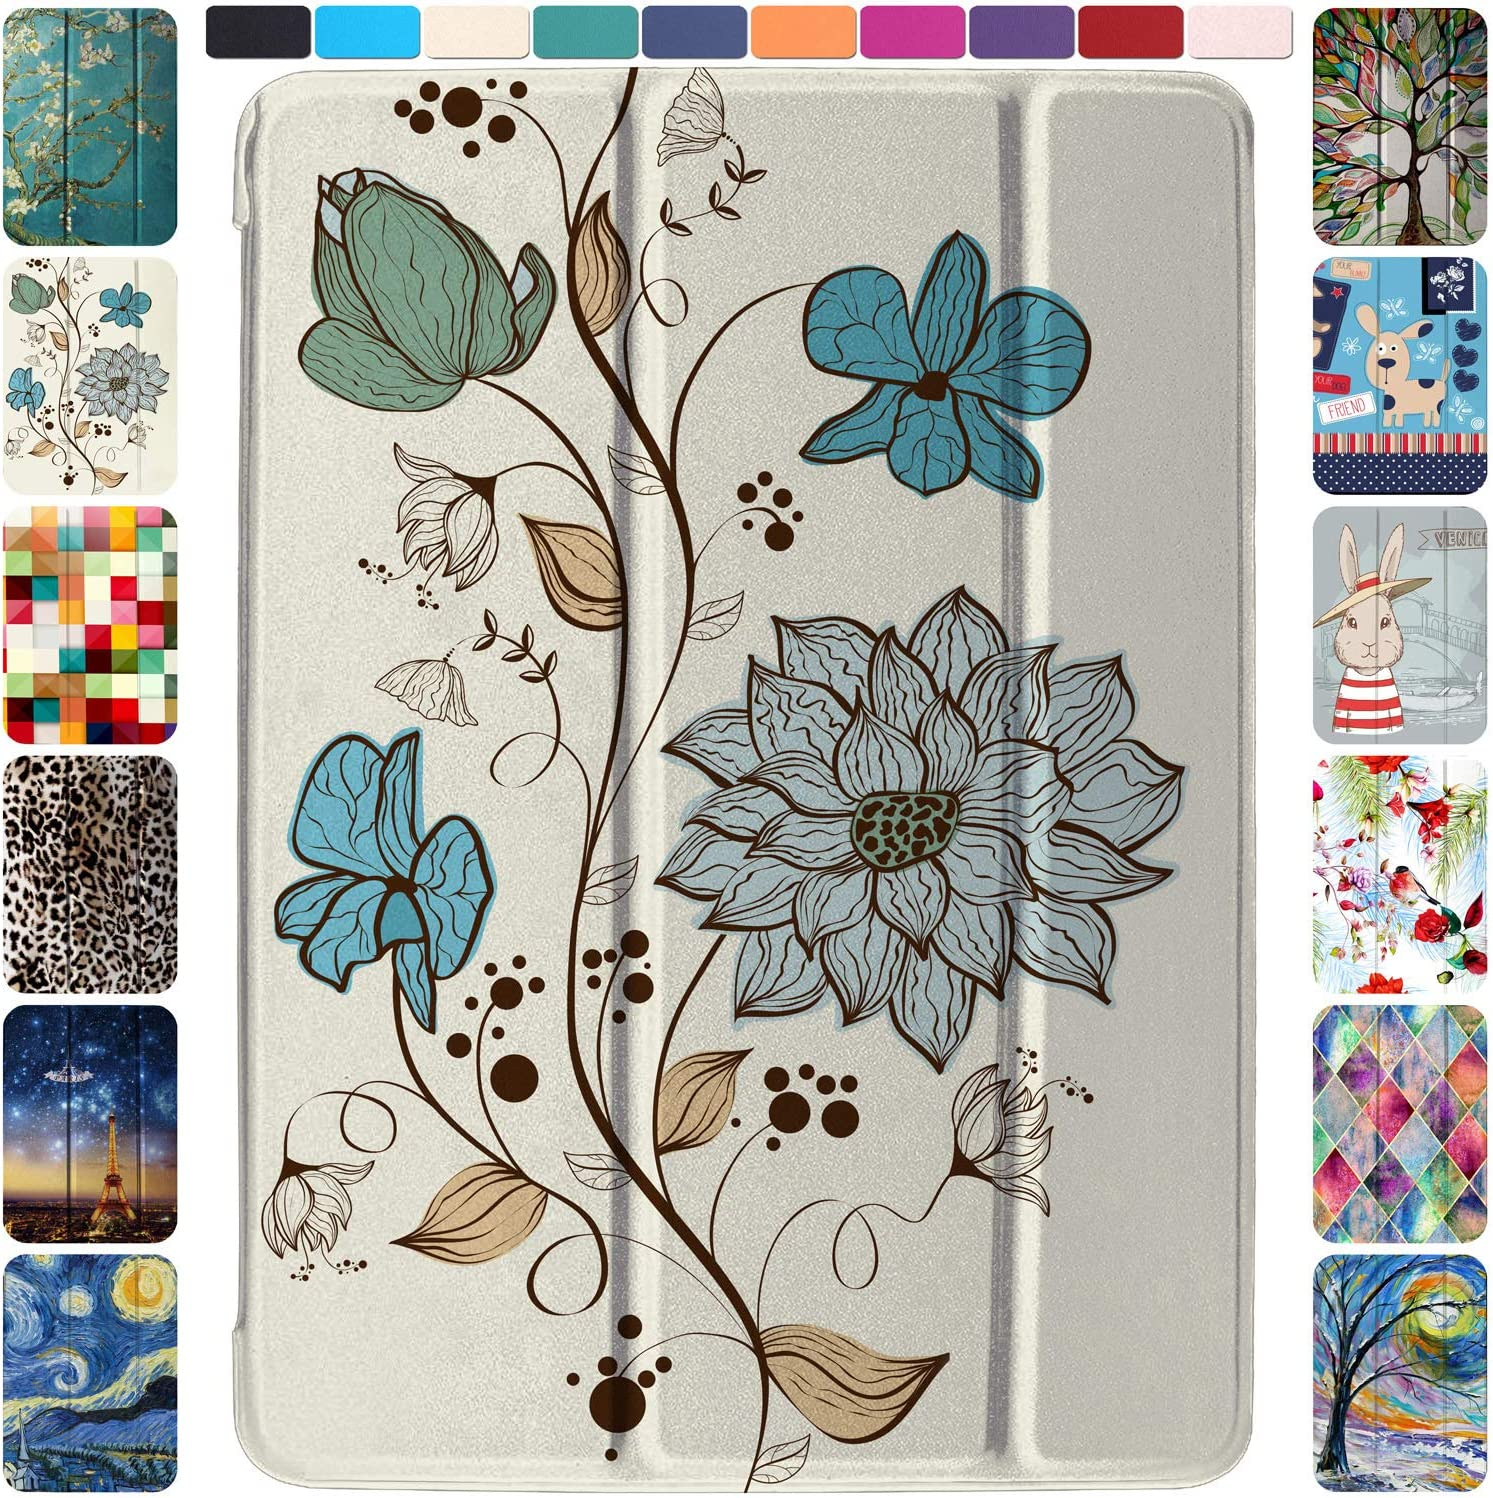 DuraSafe Cases iPad PRO 11 2020 MY232LL/A MXDC2LL/A MXDE2LL/A MXDG2LL/A MY252LL/A MXDD2LL/A MXDF2LL/A MXDH2LL/A Ultra Slim Supportive Classic Case with Adjustable Stand Feature - Watercolor Flowers